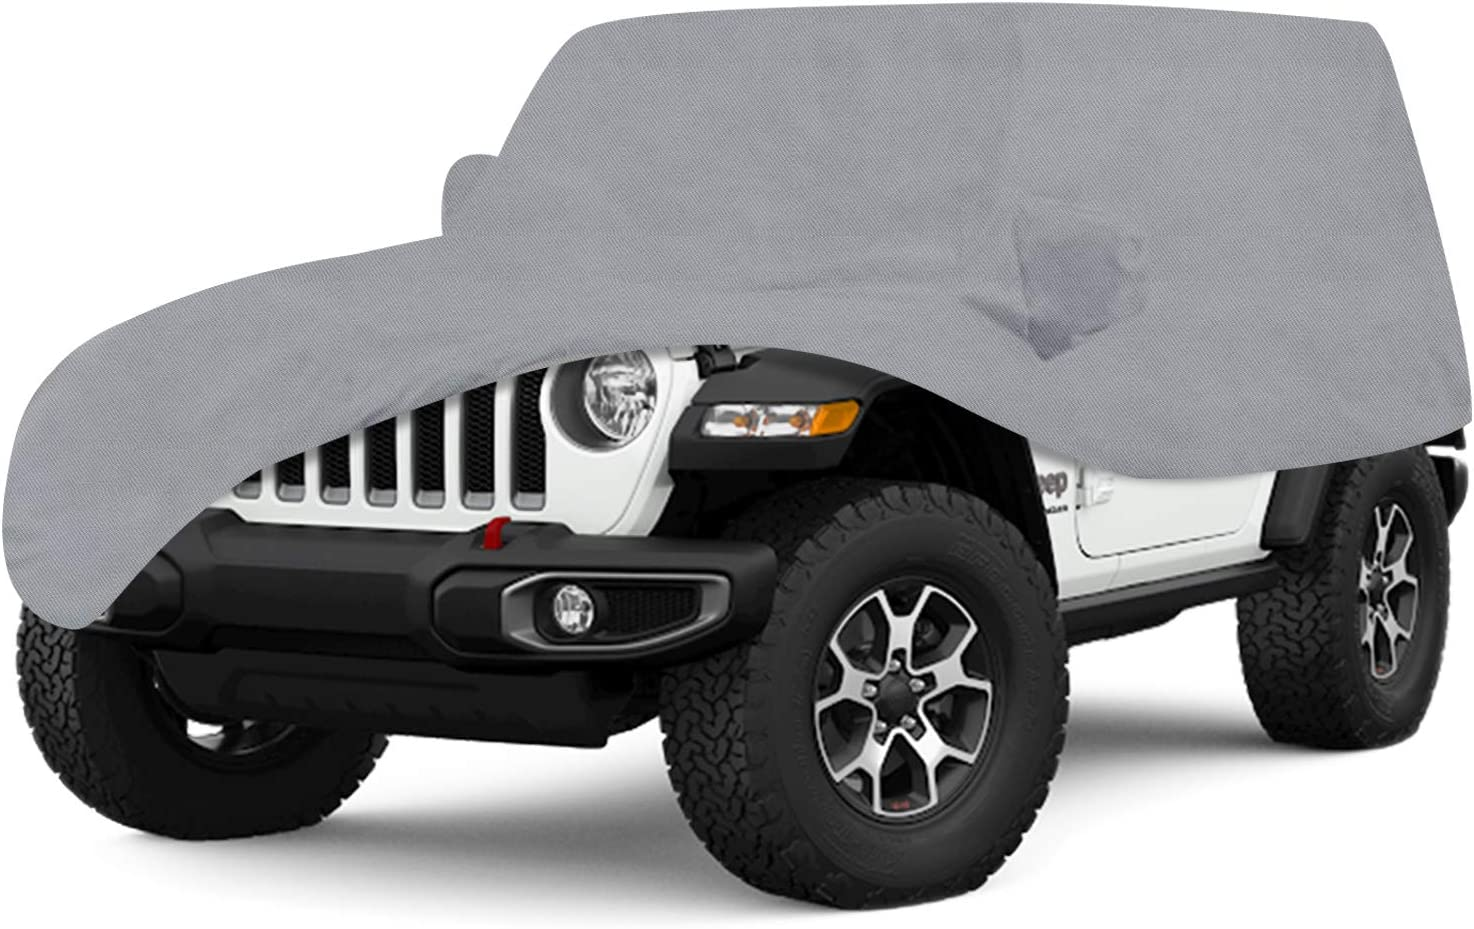 OOFIT Jeep Wrangler Full Cover for 2 Door Jeep Wrangler 5 Layers Fabric Windproof Dustproof Scratch Proof /& Adhesive Repair Patch Grey